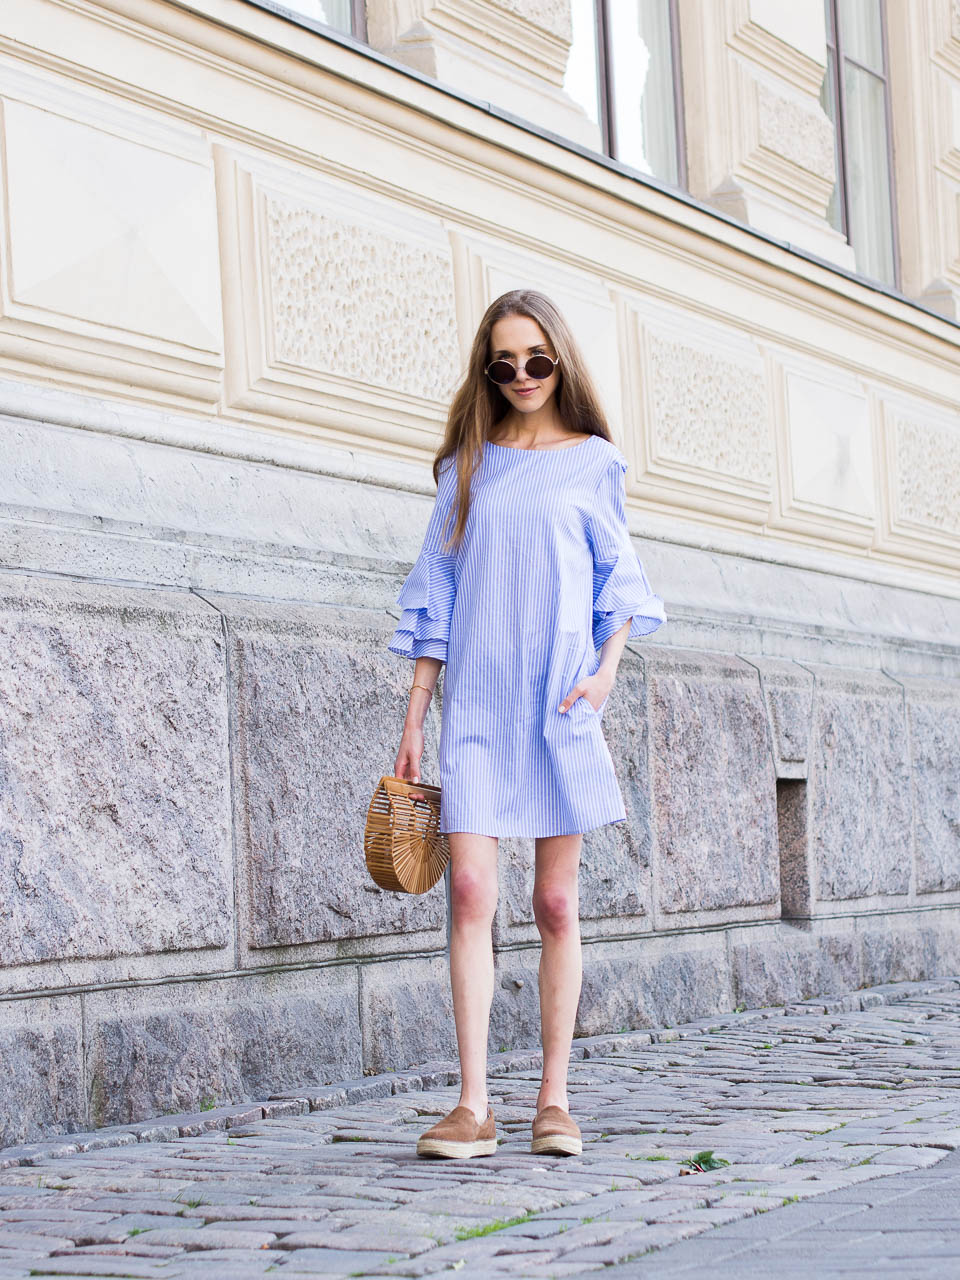 fashion-blogger-outfit-inspiration-summer-dress-ruffles